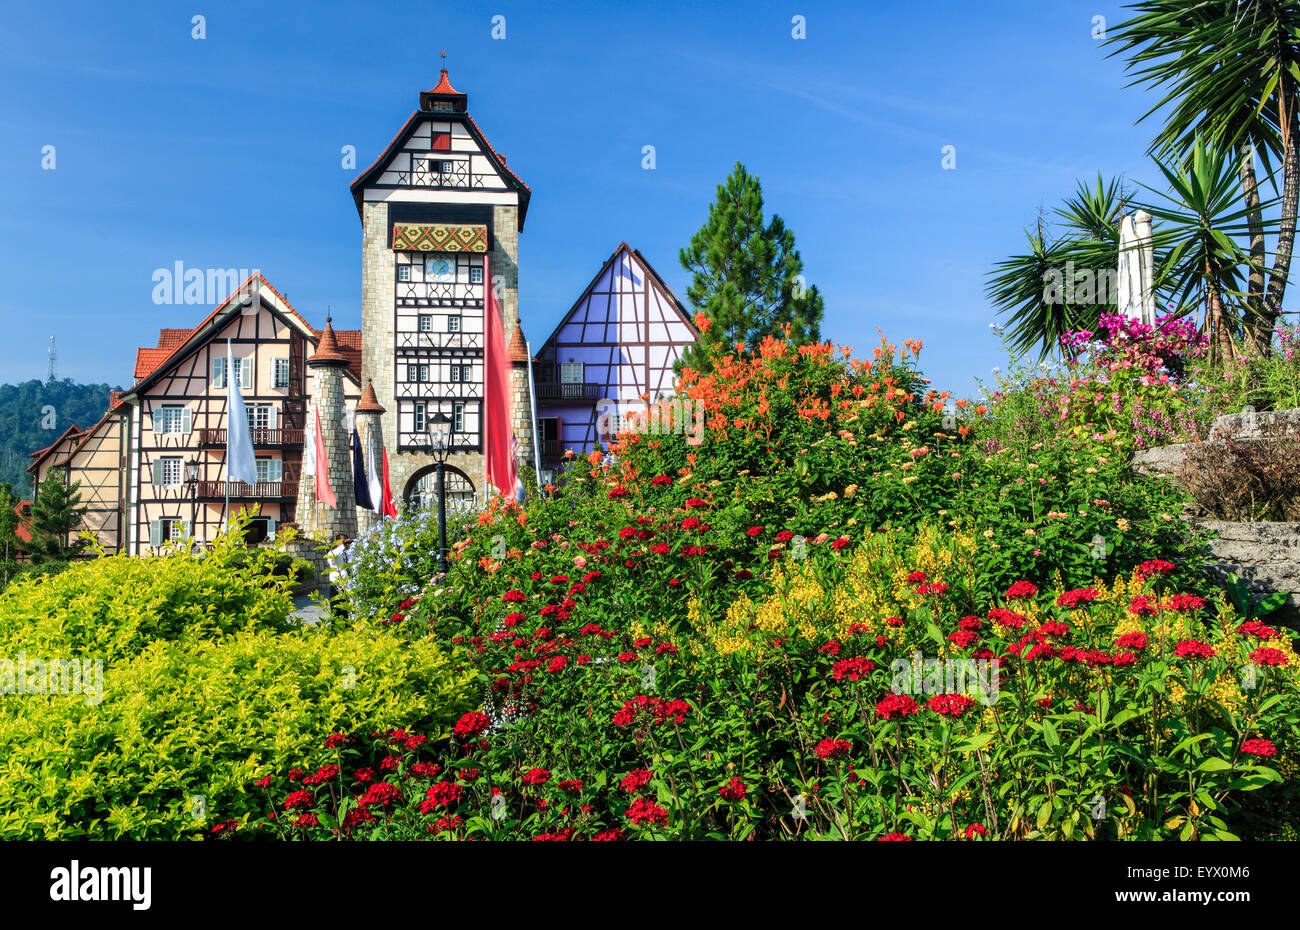 The Colmar Tropical in Bukit Tinggi, Pahang.  The Colmare Tropicale is remodeled after the French village of Colmare. - Stock Image